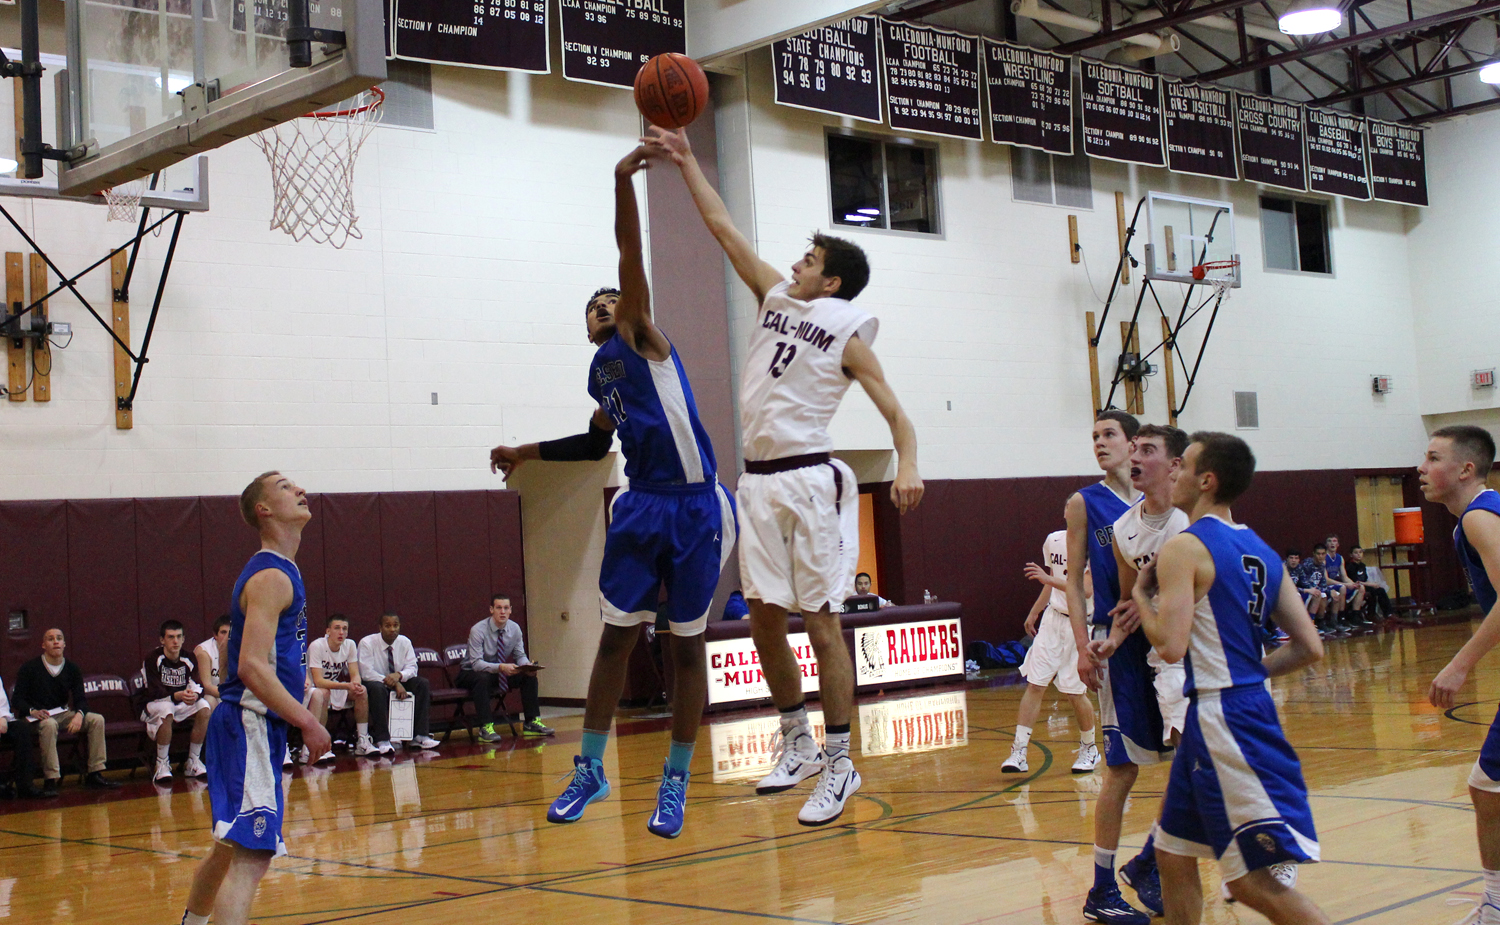 BOYS BASKETBALL: Cal-Mum Mounts Comeback to Defeat Geneseo